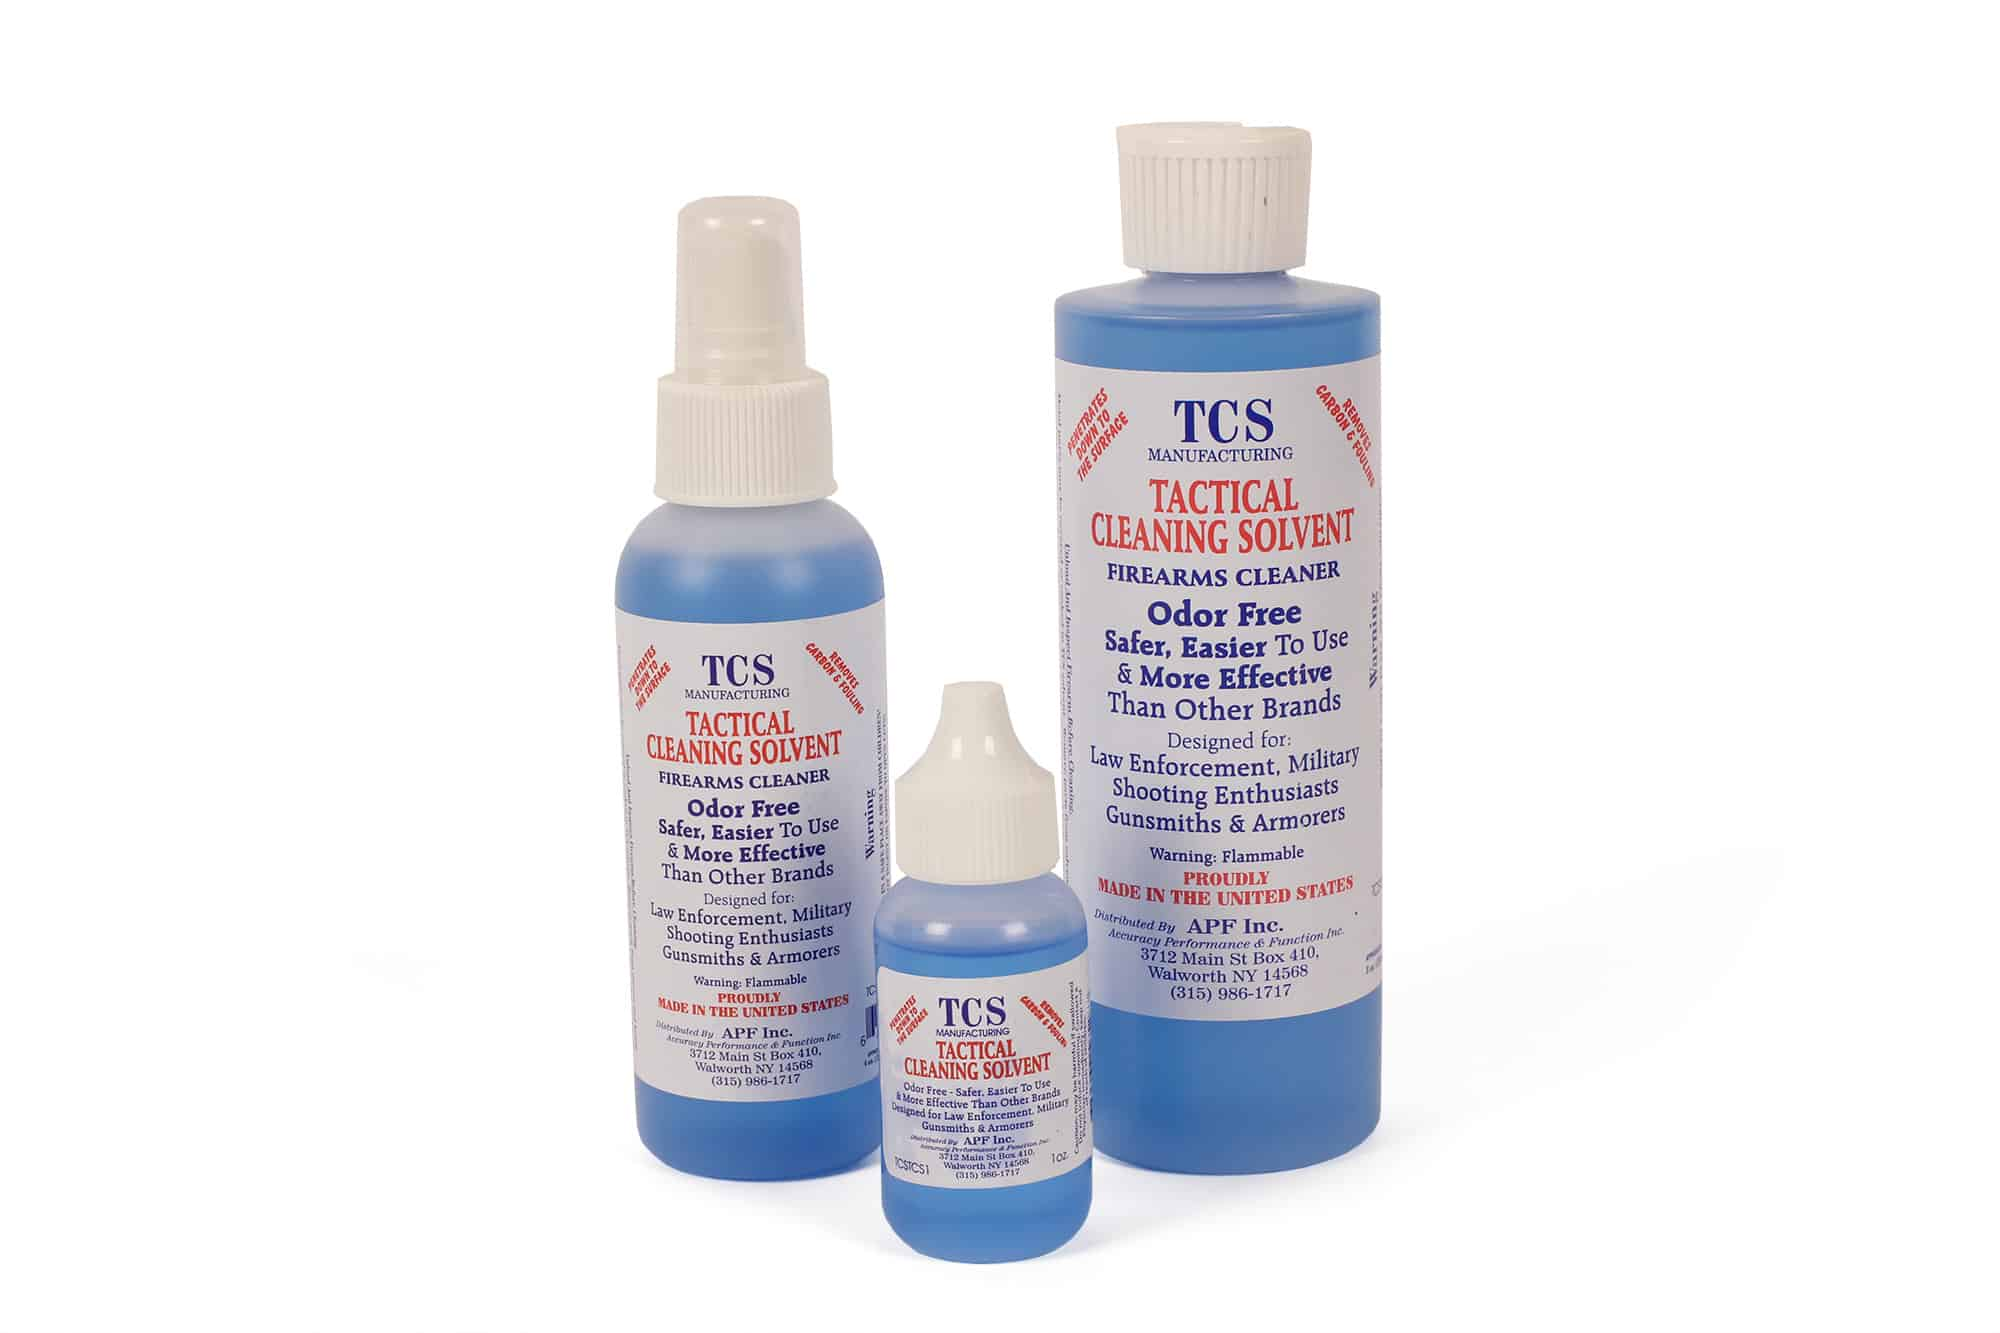 TCS Tactical Cleaning Solvent